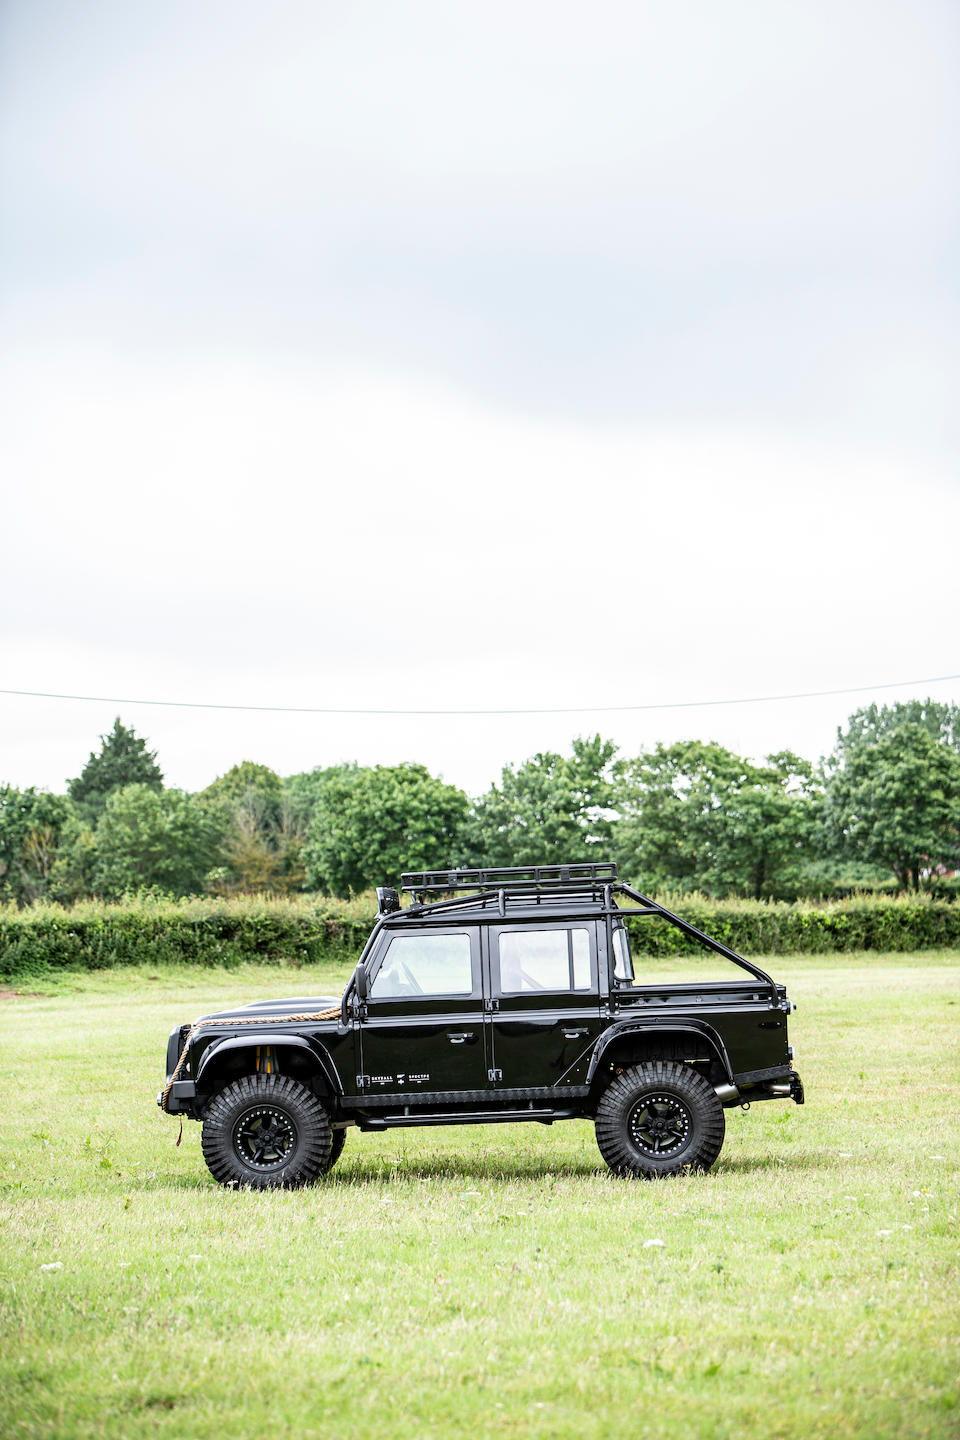 The only Land Rover used in two consecutive James Bond movies; Skyfall and Spectre,2011 Land Rover  Defender SVX 'Spectre' 4x4 Utility  Chassis no. SALLDHFS8AA797848